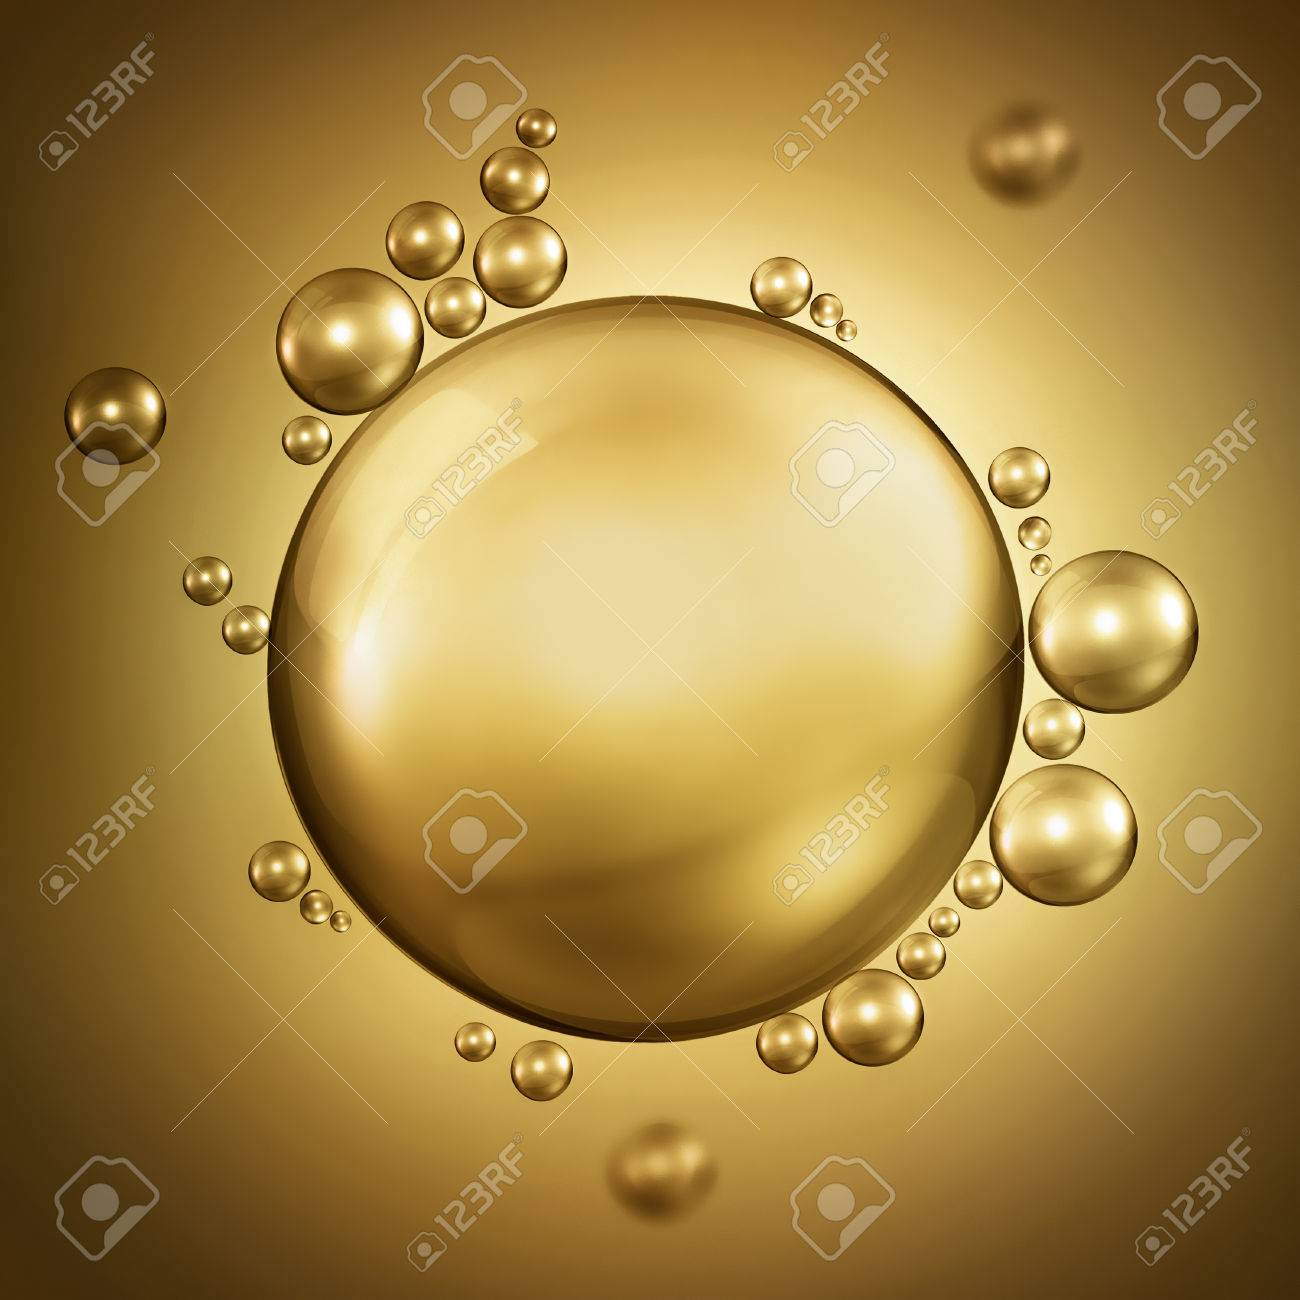 abstract design with air bubbles in oil - 46122929